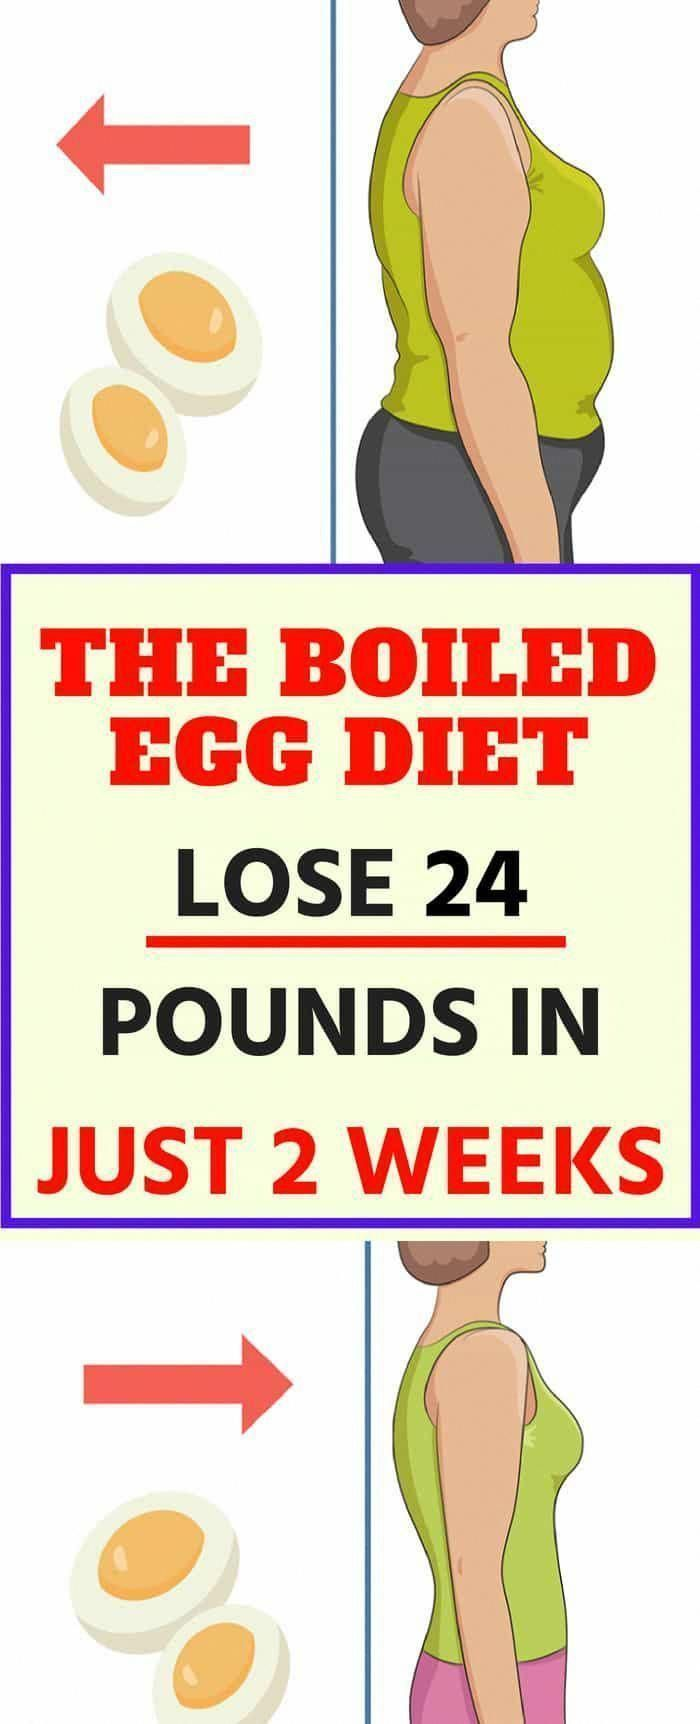 The Boiled Egg Eating plan ? Drop 24 Pounds In Just 2 Weeks #3DayEggDietWeightLoss #boiledeggnutrition The Boiled Egg Eating plan ? Drop 24 Pounds In Just 2 Weeks #3DayEggDietWeightLoss #boiledeggnutrition The Boiled Egg Eating plan ? Drop 24 Pounds In Just 2 Weeks #3DayEggDietWeightLoss #boiledeggnutrition The Boiled Egg Eating plan ? Drop 24 Pounds In Just 2 Weeks #3DayEggDietWeightLoss #boiledeggnutrition The Boiled Egg Eating plan ? Drop 24 Pounds In Just 2 Weeks #3DayEggDietWeightLoss #boil #boiledeggnutrition